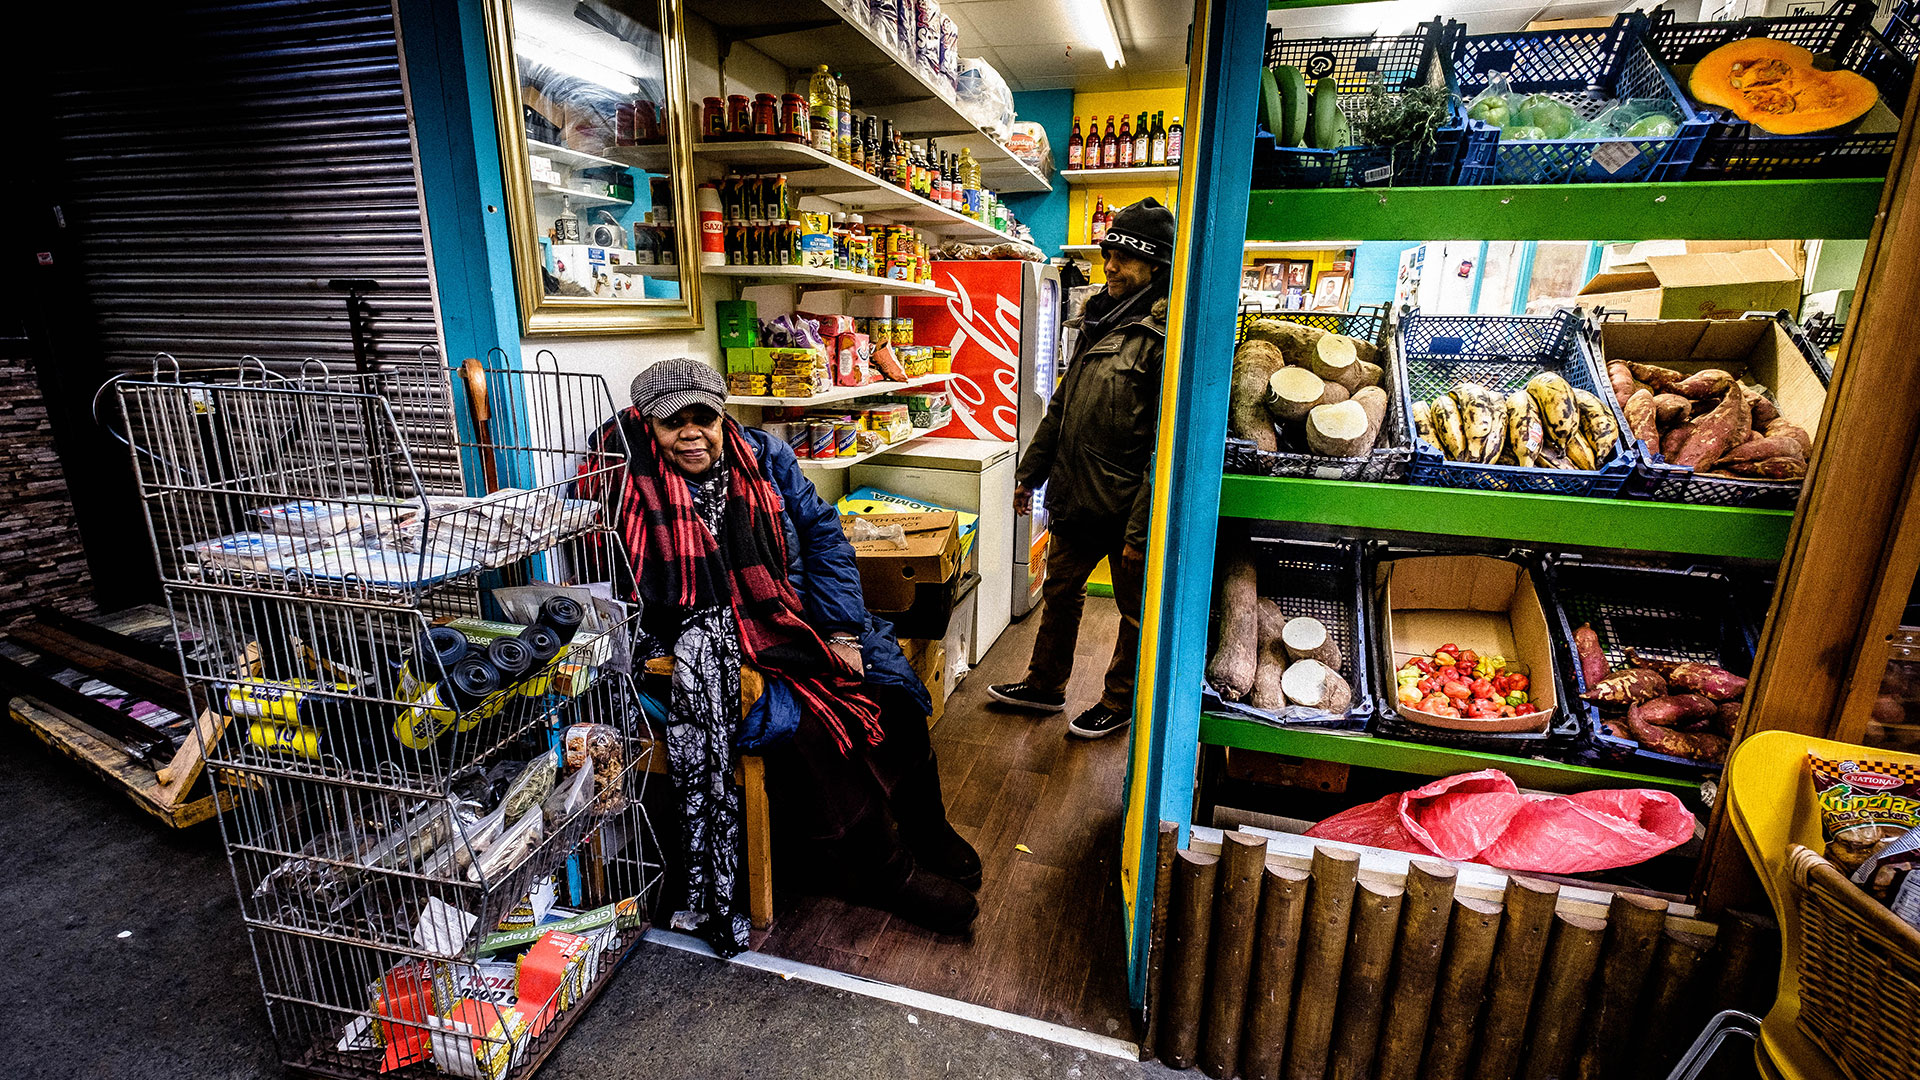 A Jamaican shopkeeper sits in front of her grocery store in London.